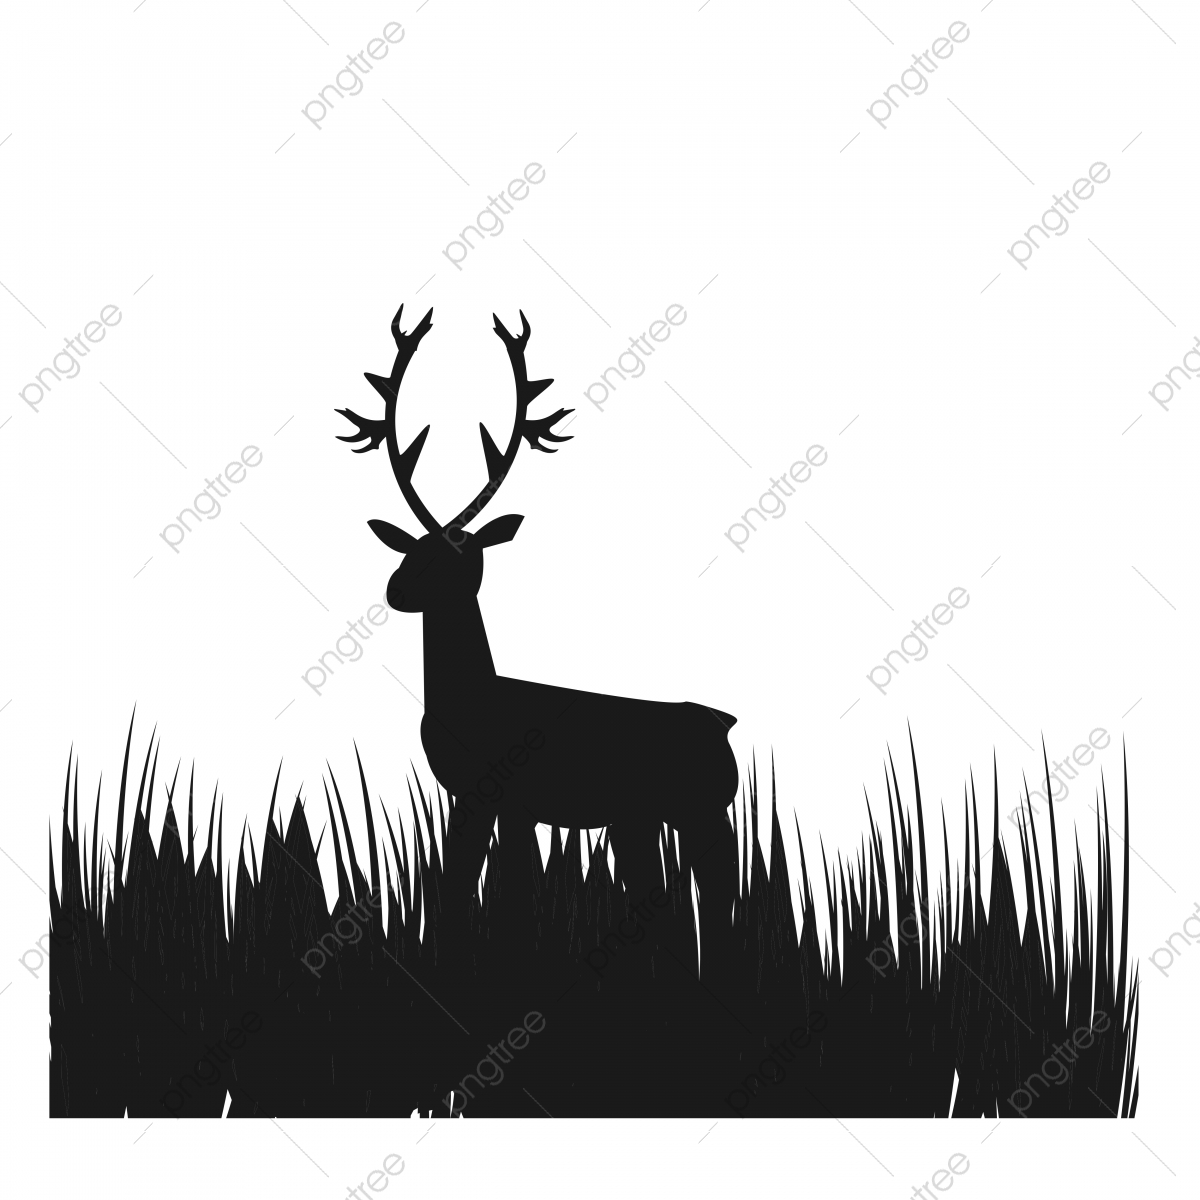 simple picture deer in the grass field vector logo and illustration logo icons picture icons simple icons png and vector with transparent background for free download https pngtree com freepng simple picture deer in the grass field vector logo and illustration 5007425 html